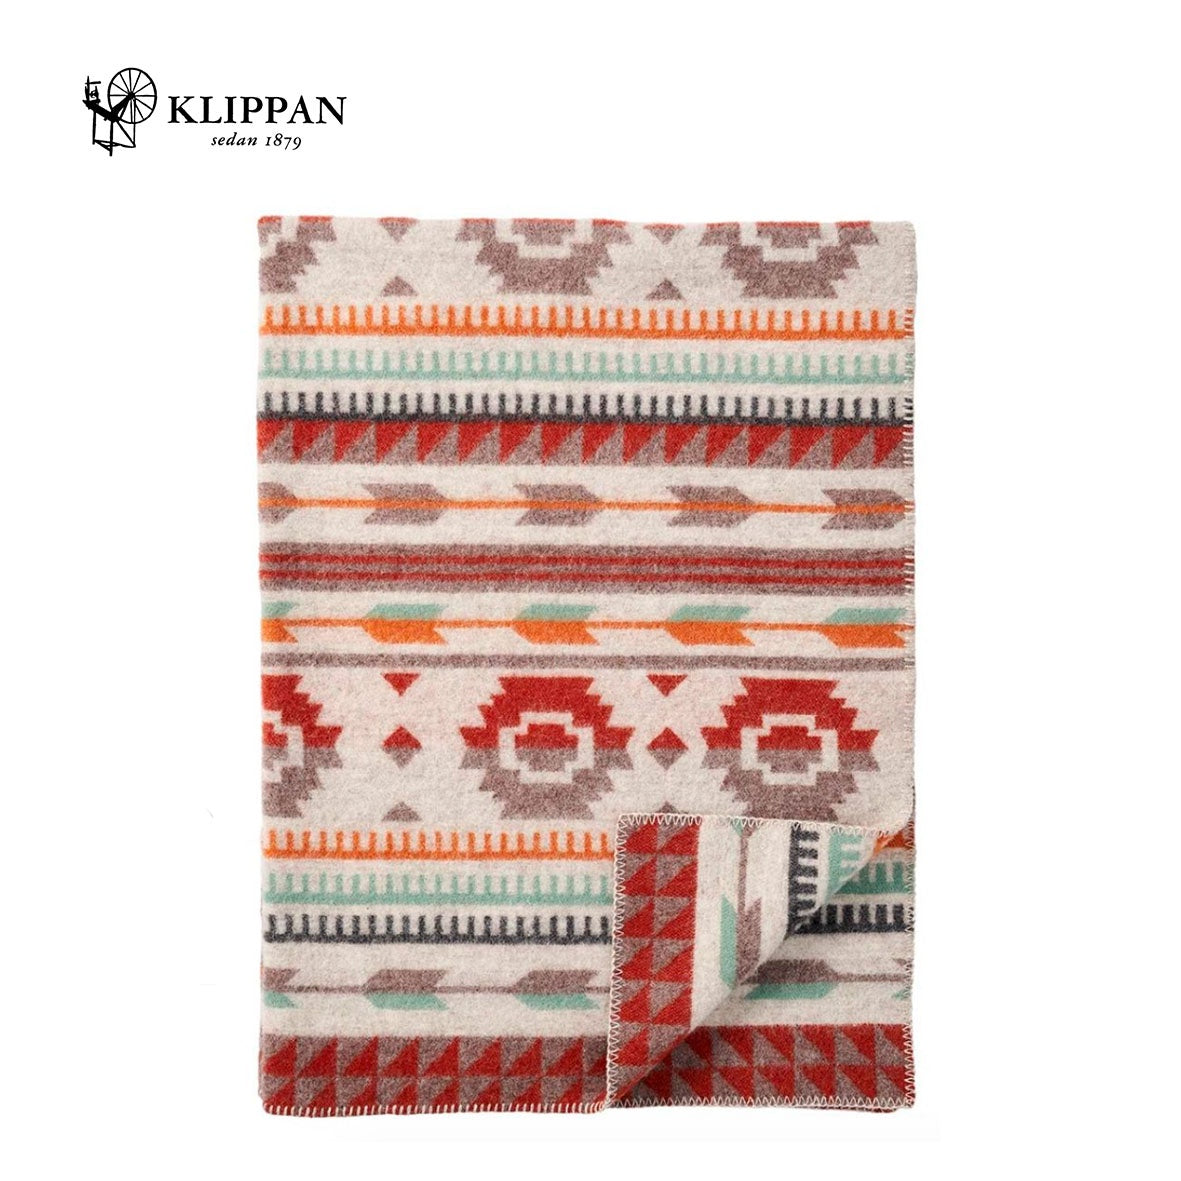 KLIPPAN Arrow Woollen Blanket, 130x180cm